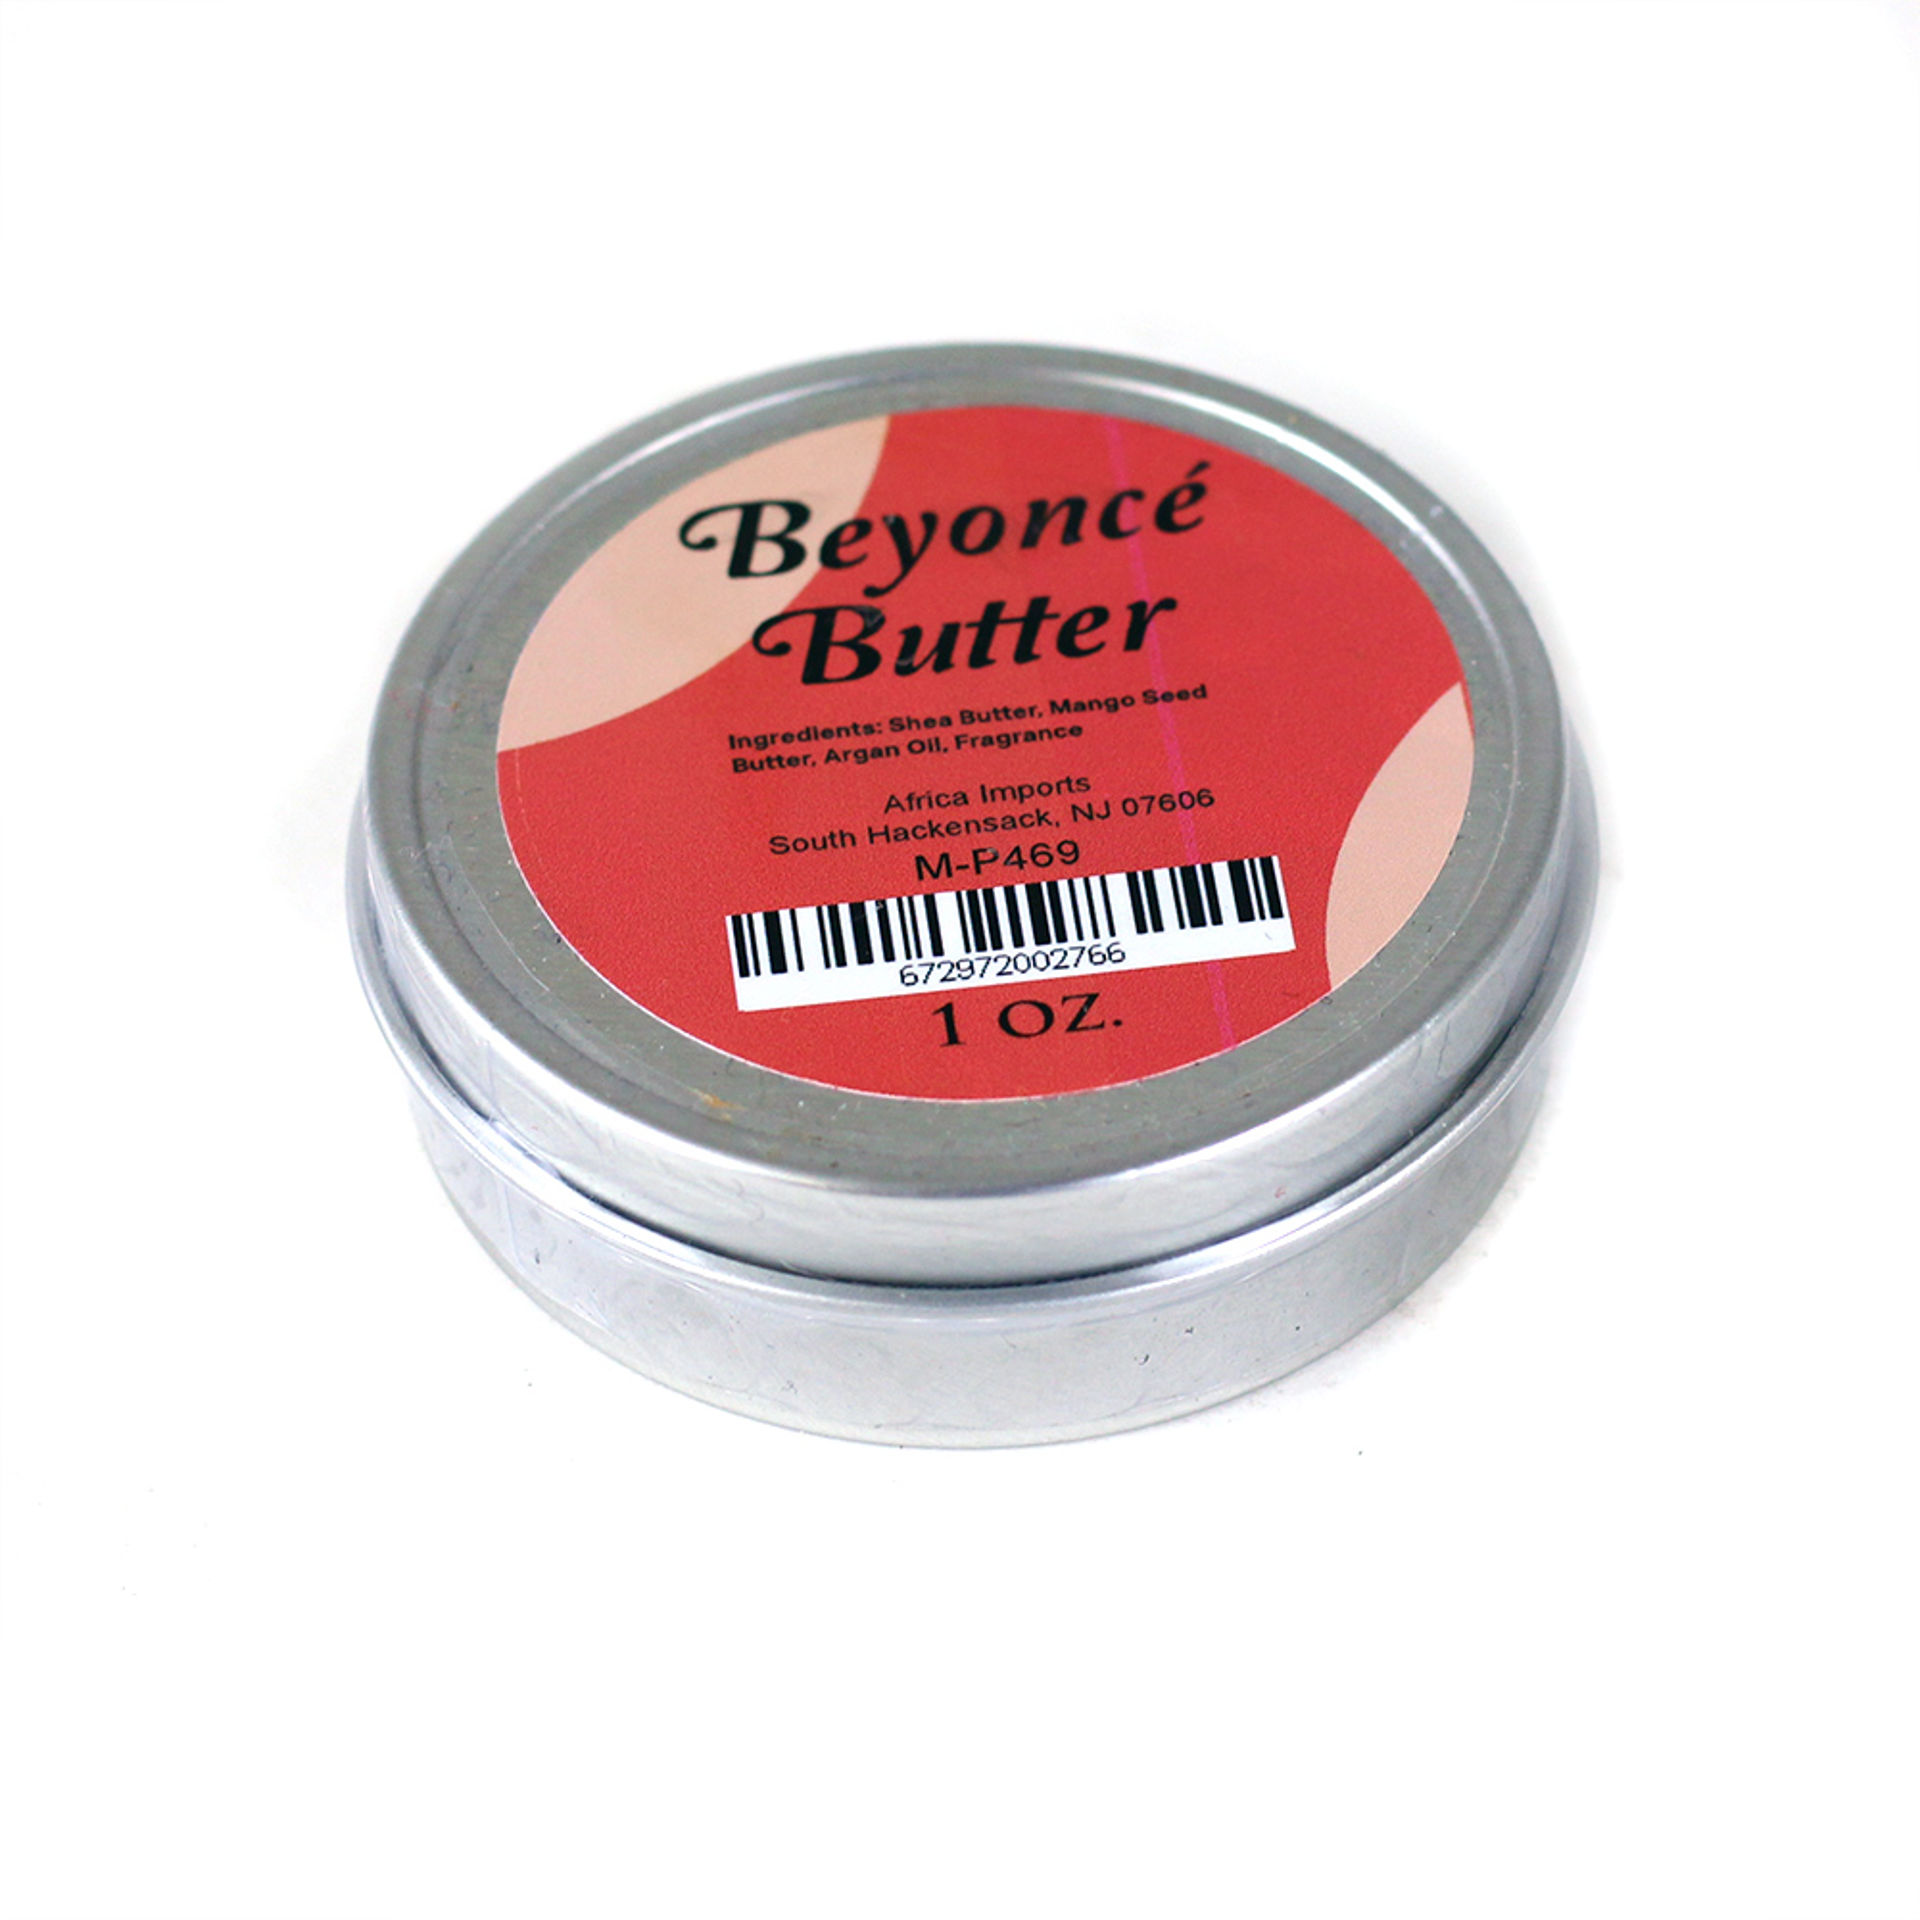 Picture of Beyoncé Butter - 1 oz.